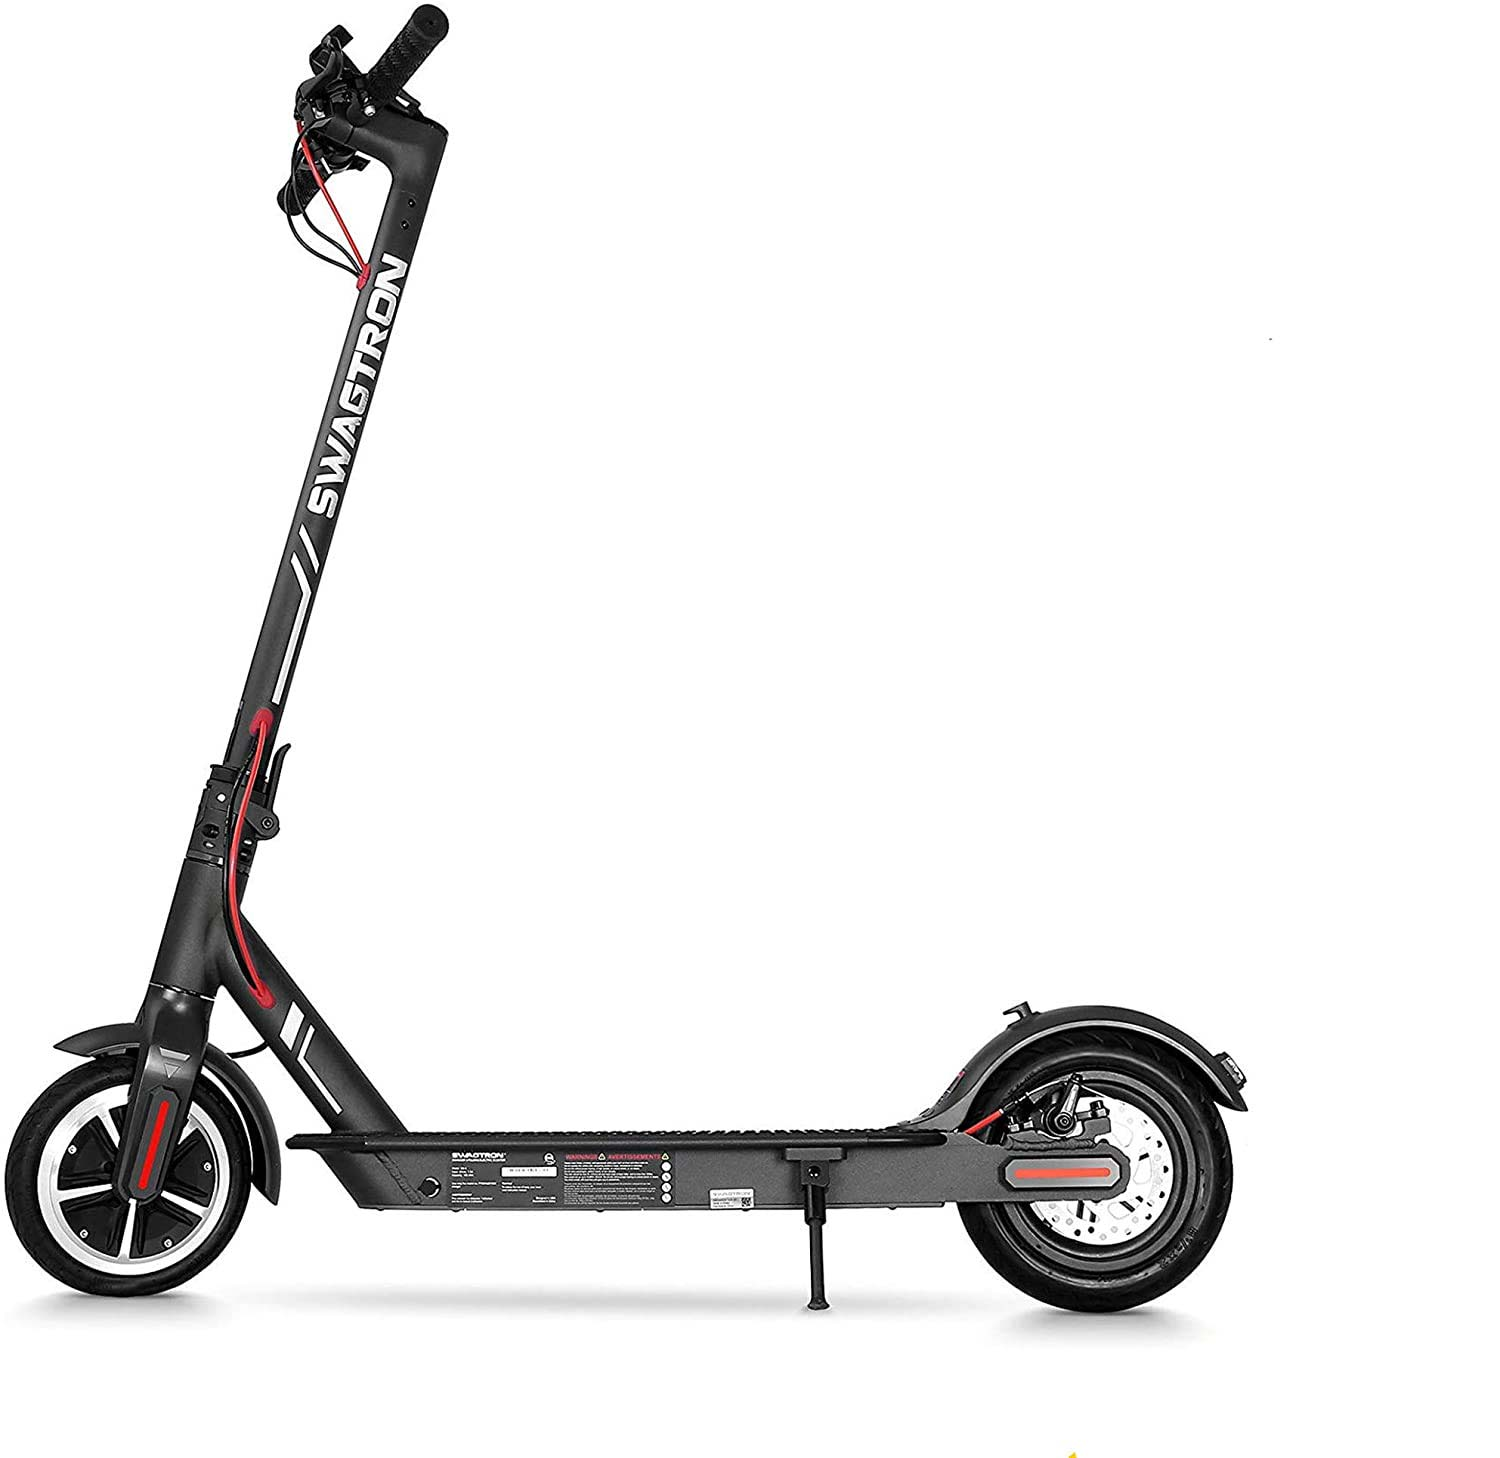 Swagtron Swagger 5 Speed Electric Scooter Review